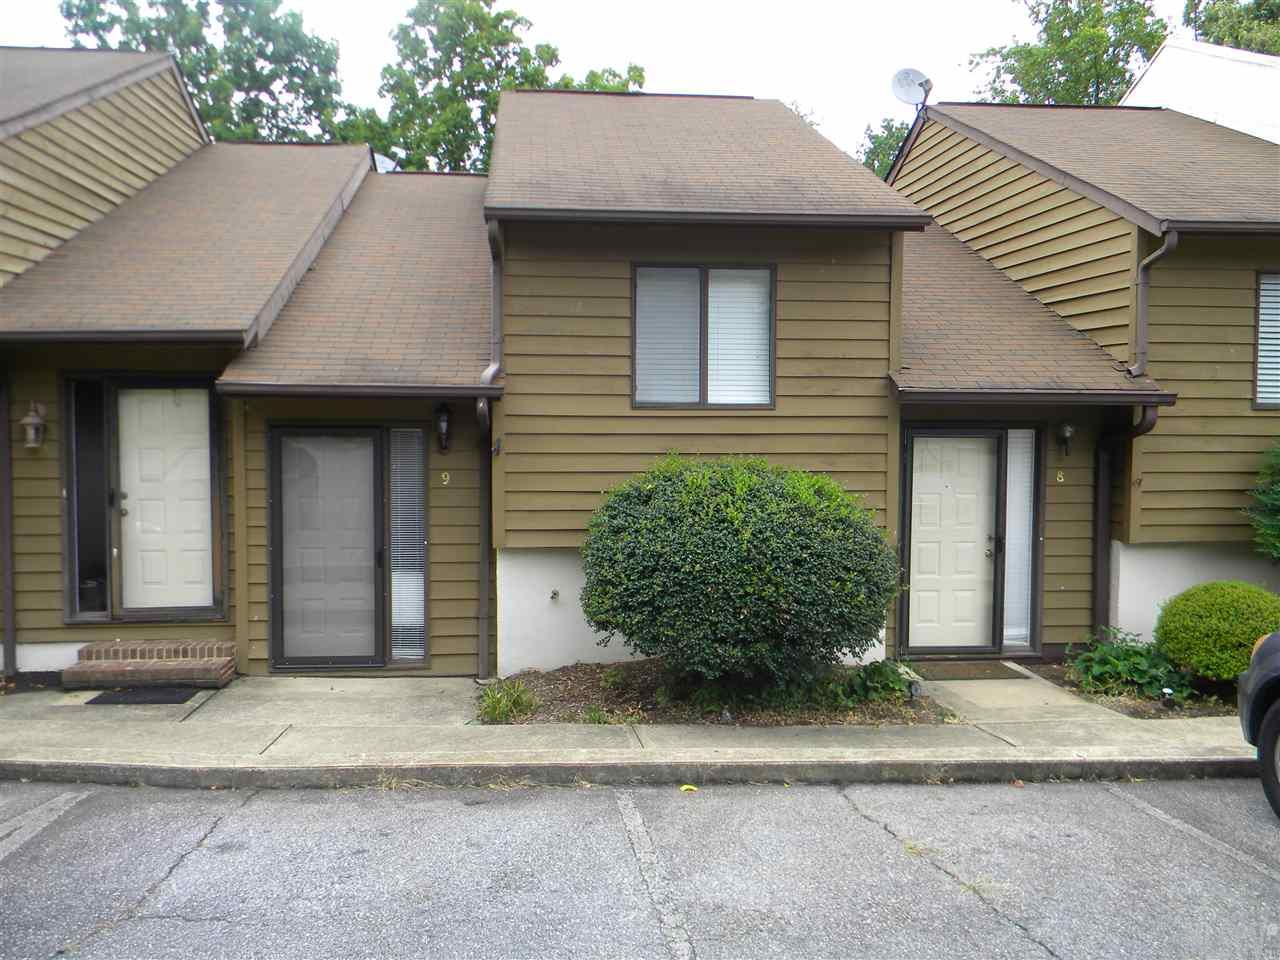 Single Family Home for Sale, ListingId:34438142, location: 1420 11TH ST DR NW Hickory 28601